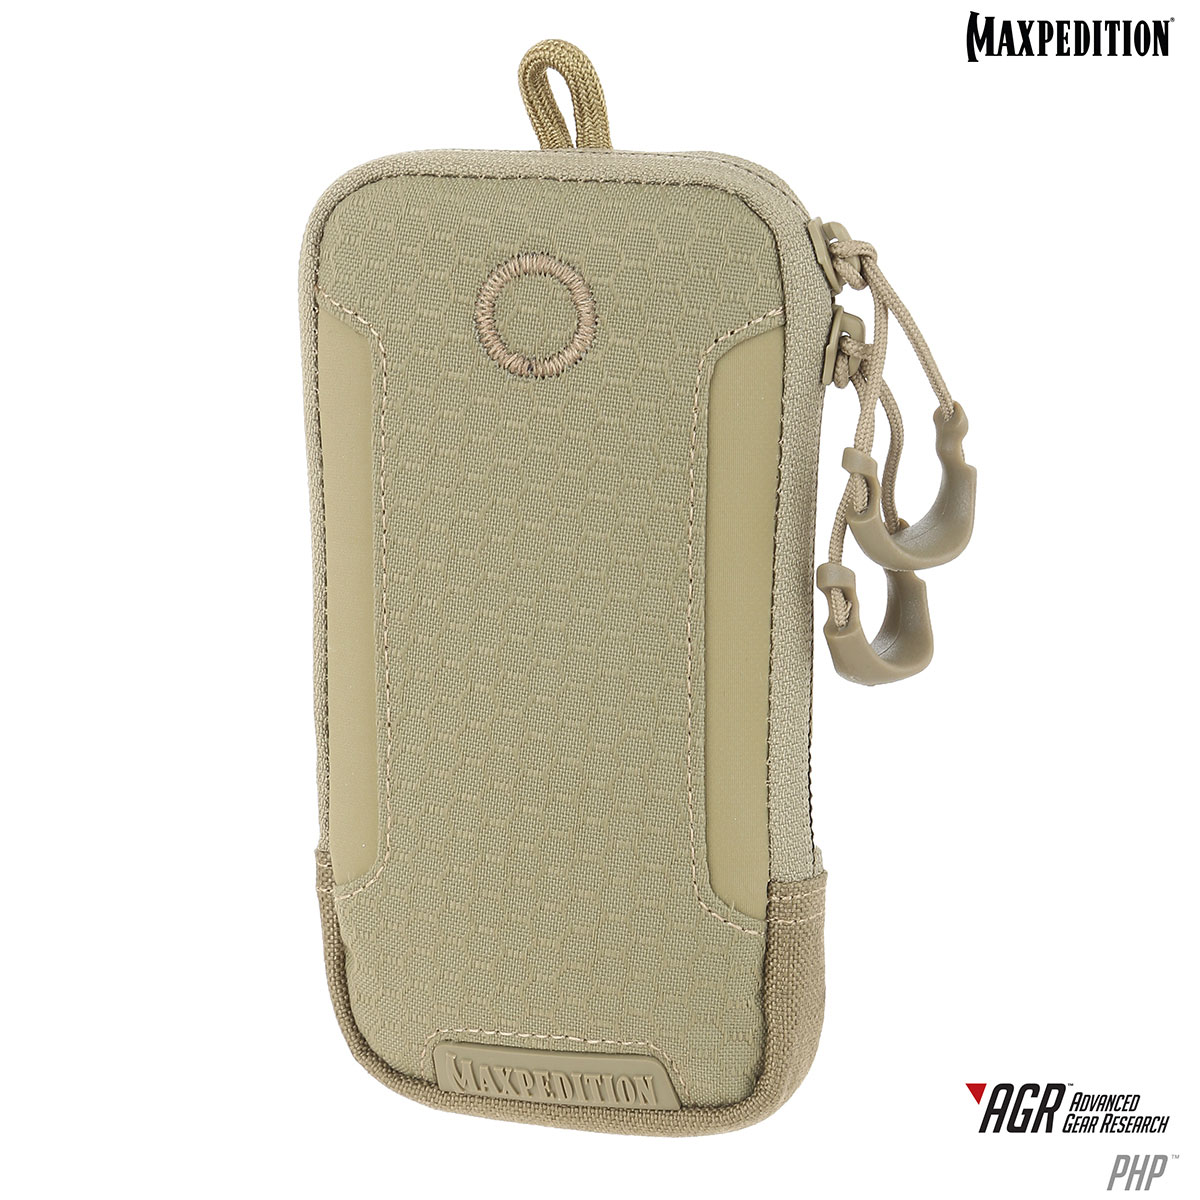 best website 94b77 44b72 Maxpedition PHPTAN AGR Advanced Gear Research PHP iPhone 6/6s Pouch, Tan